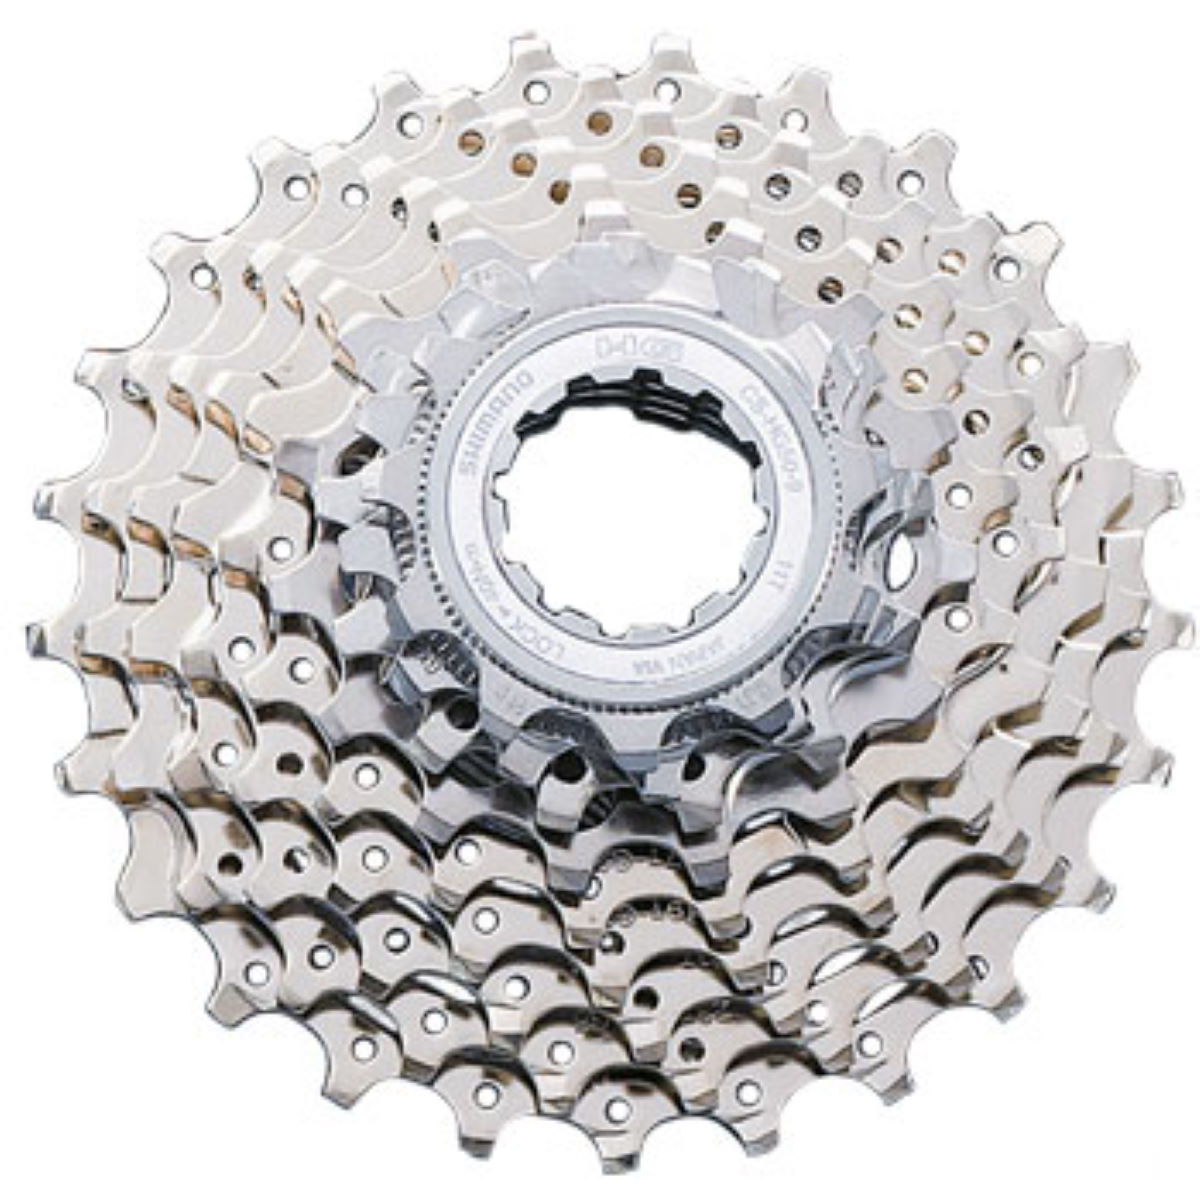 448eb6bbd5c what are the individual cog sizes? Products related to my question. Shimano  XT M770 9 Speed Cassette